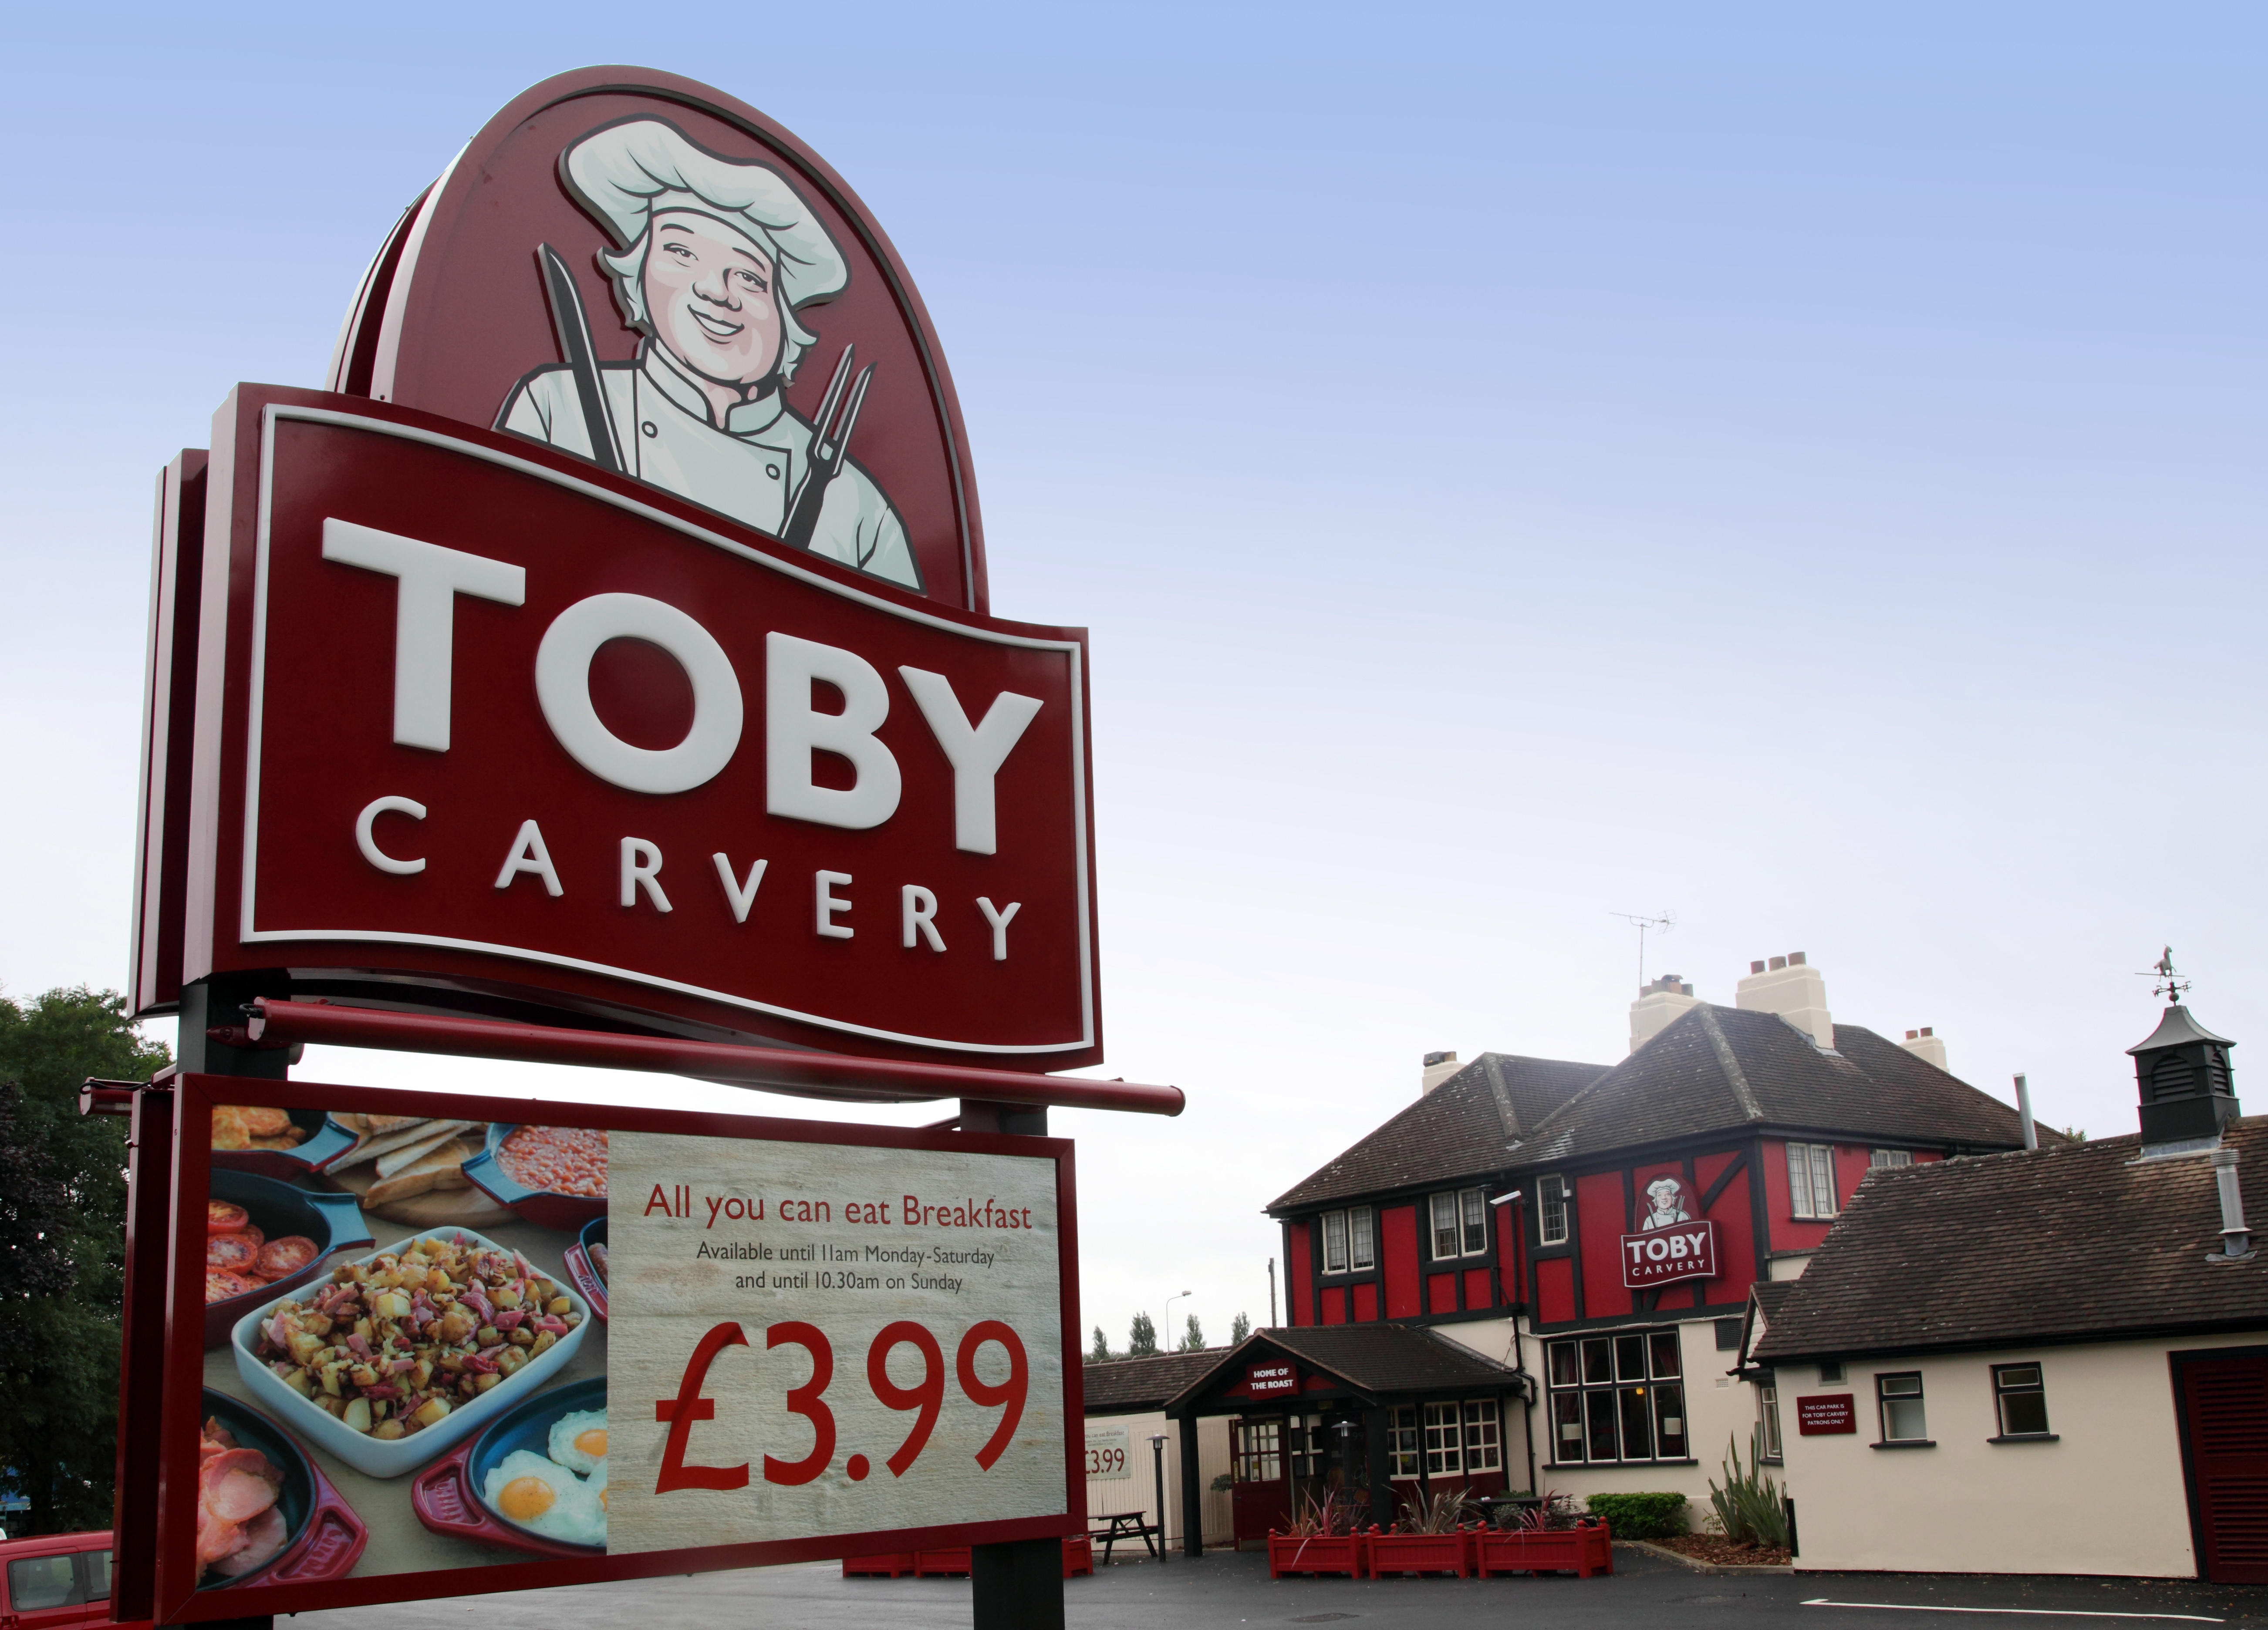 Parents visiting Toby Carvery can get a kids meal for £1 with the purchase of any adult main